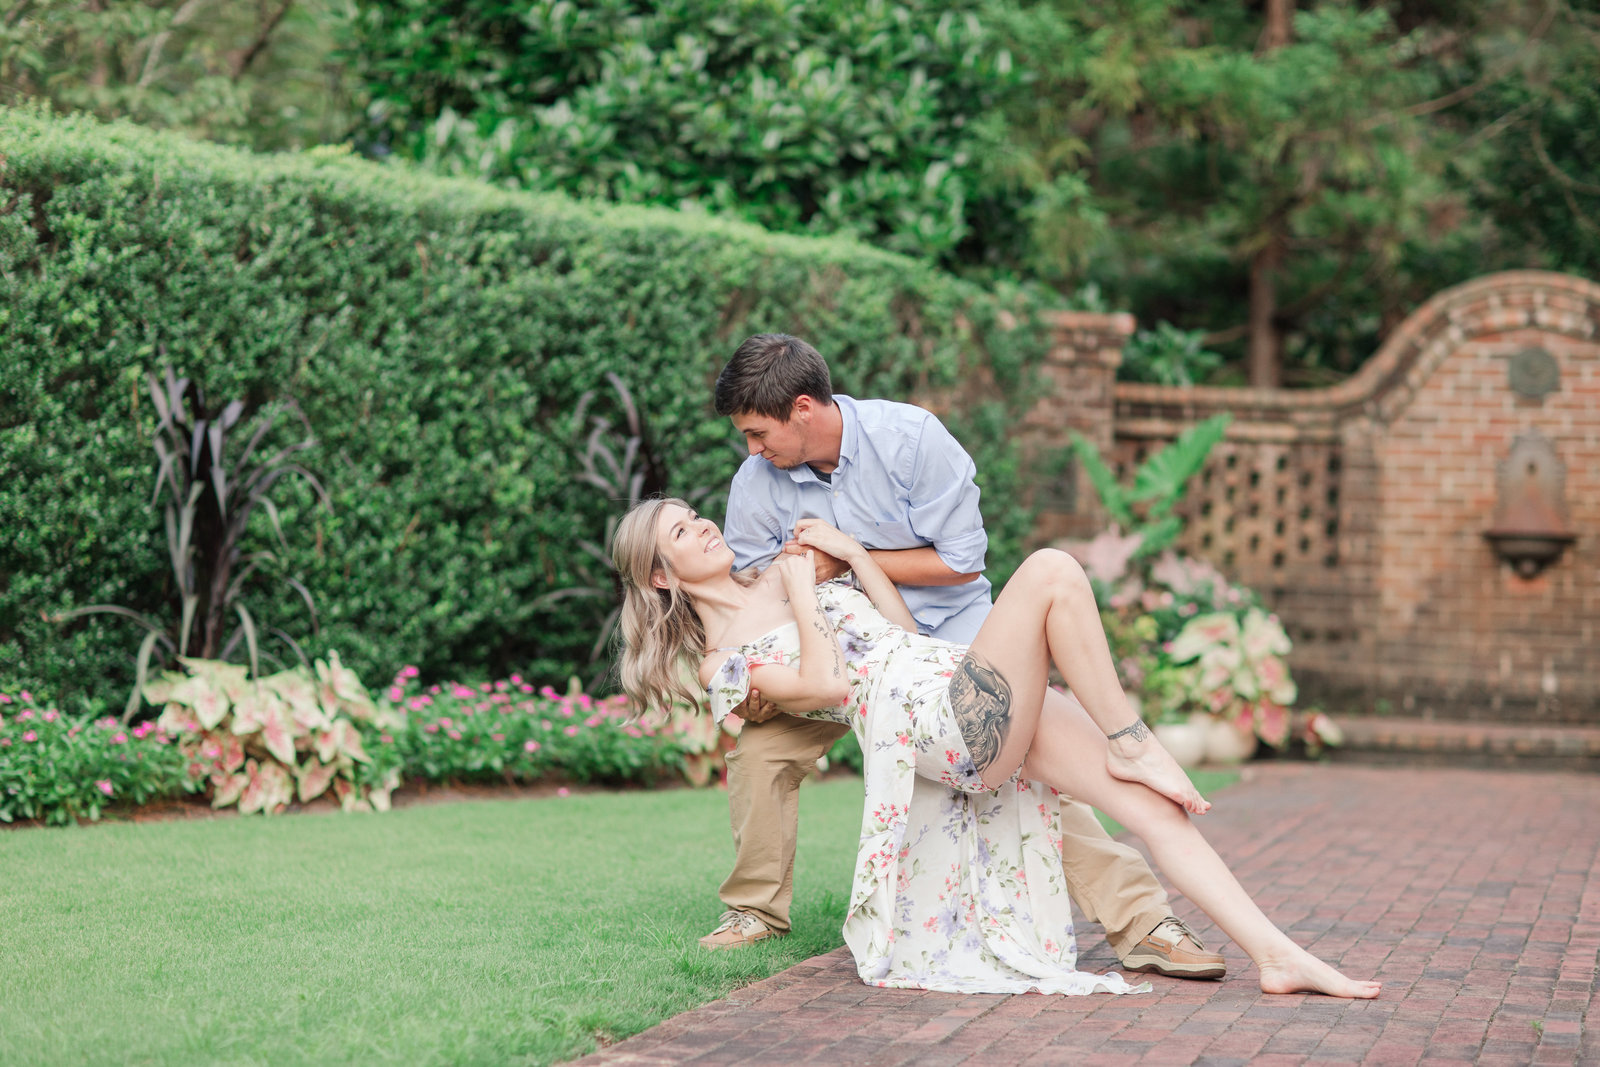 Jennifer B Photography-Sandhills Horticultural Gardens Engagement-Pinehurst NC-Cody and Kayla-2019-0195